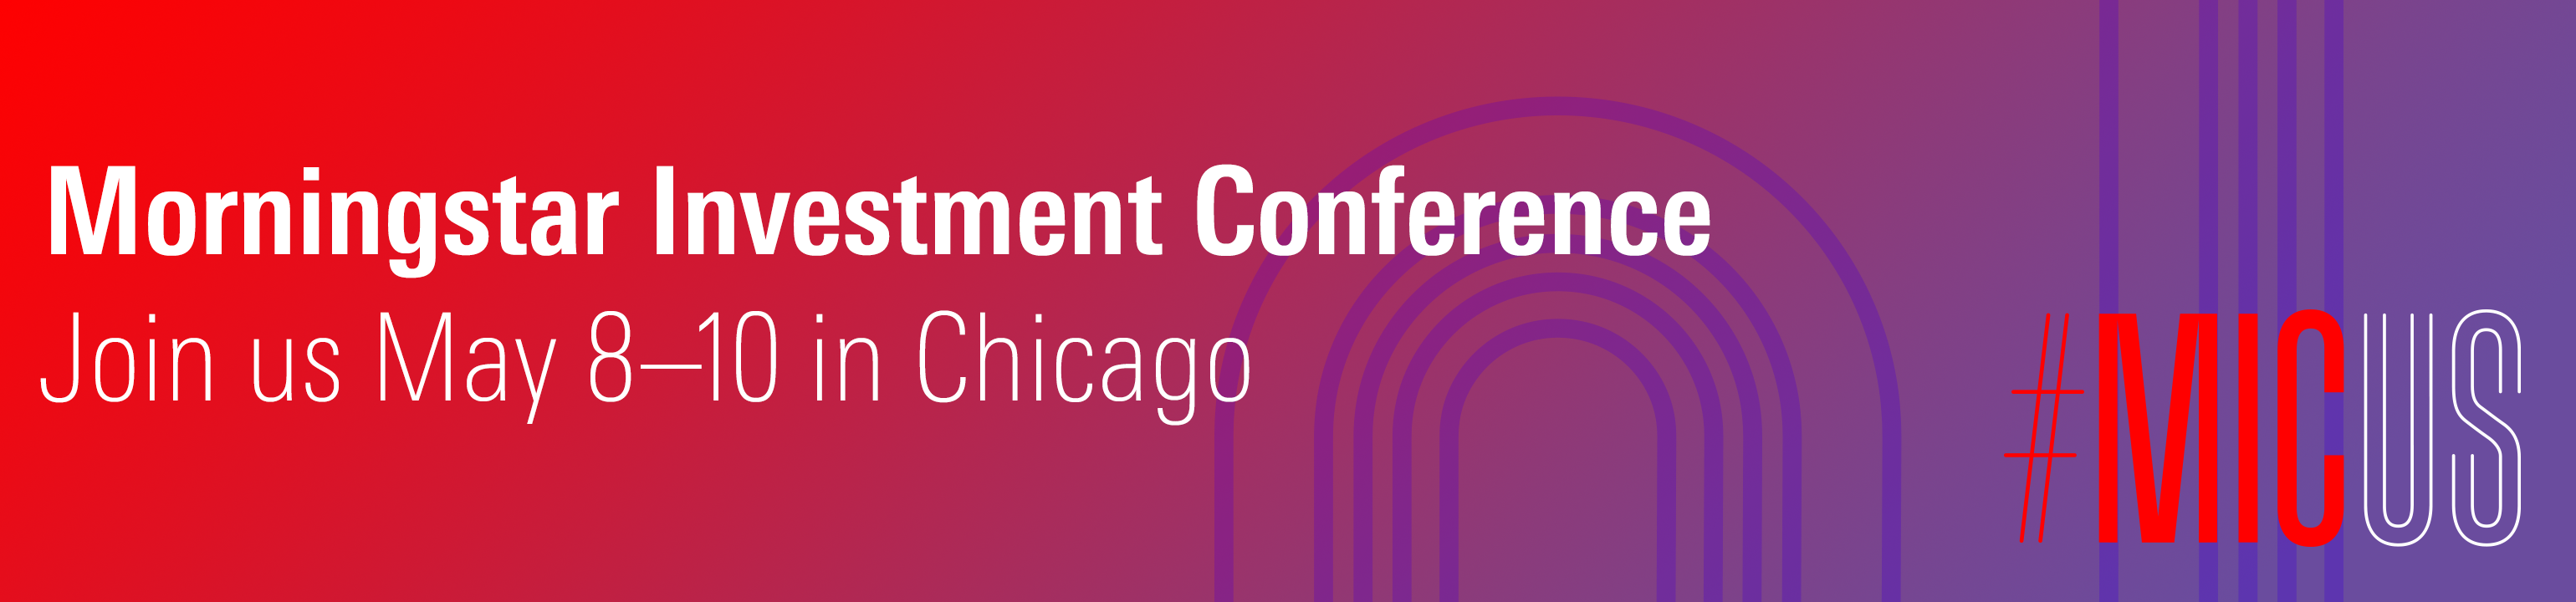 Morningstar Investment Conference 2019 USA